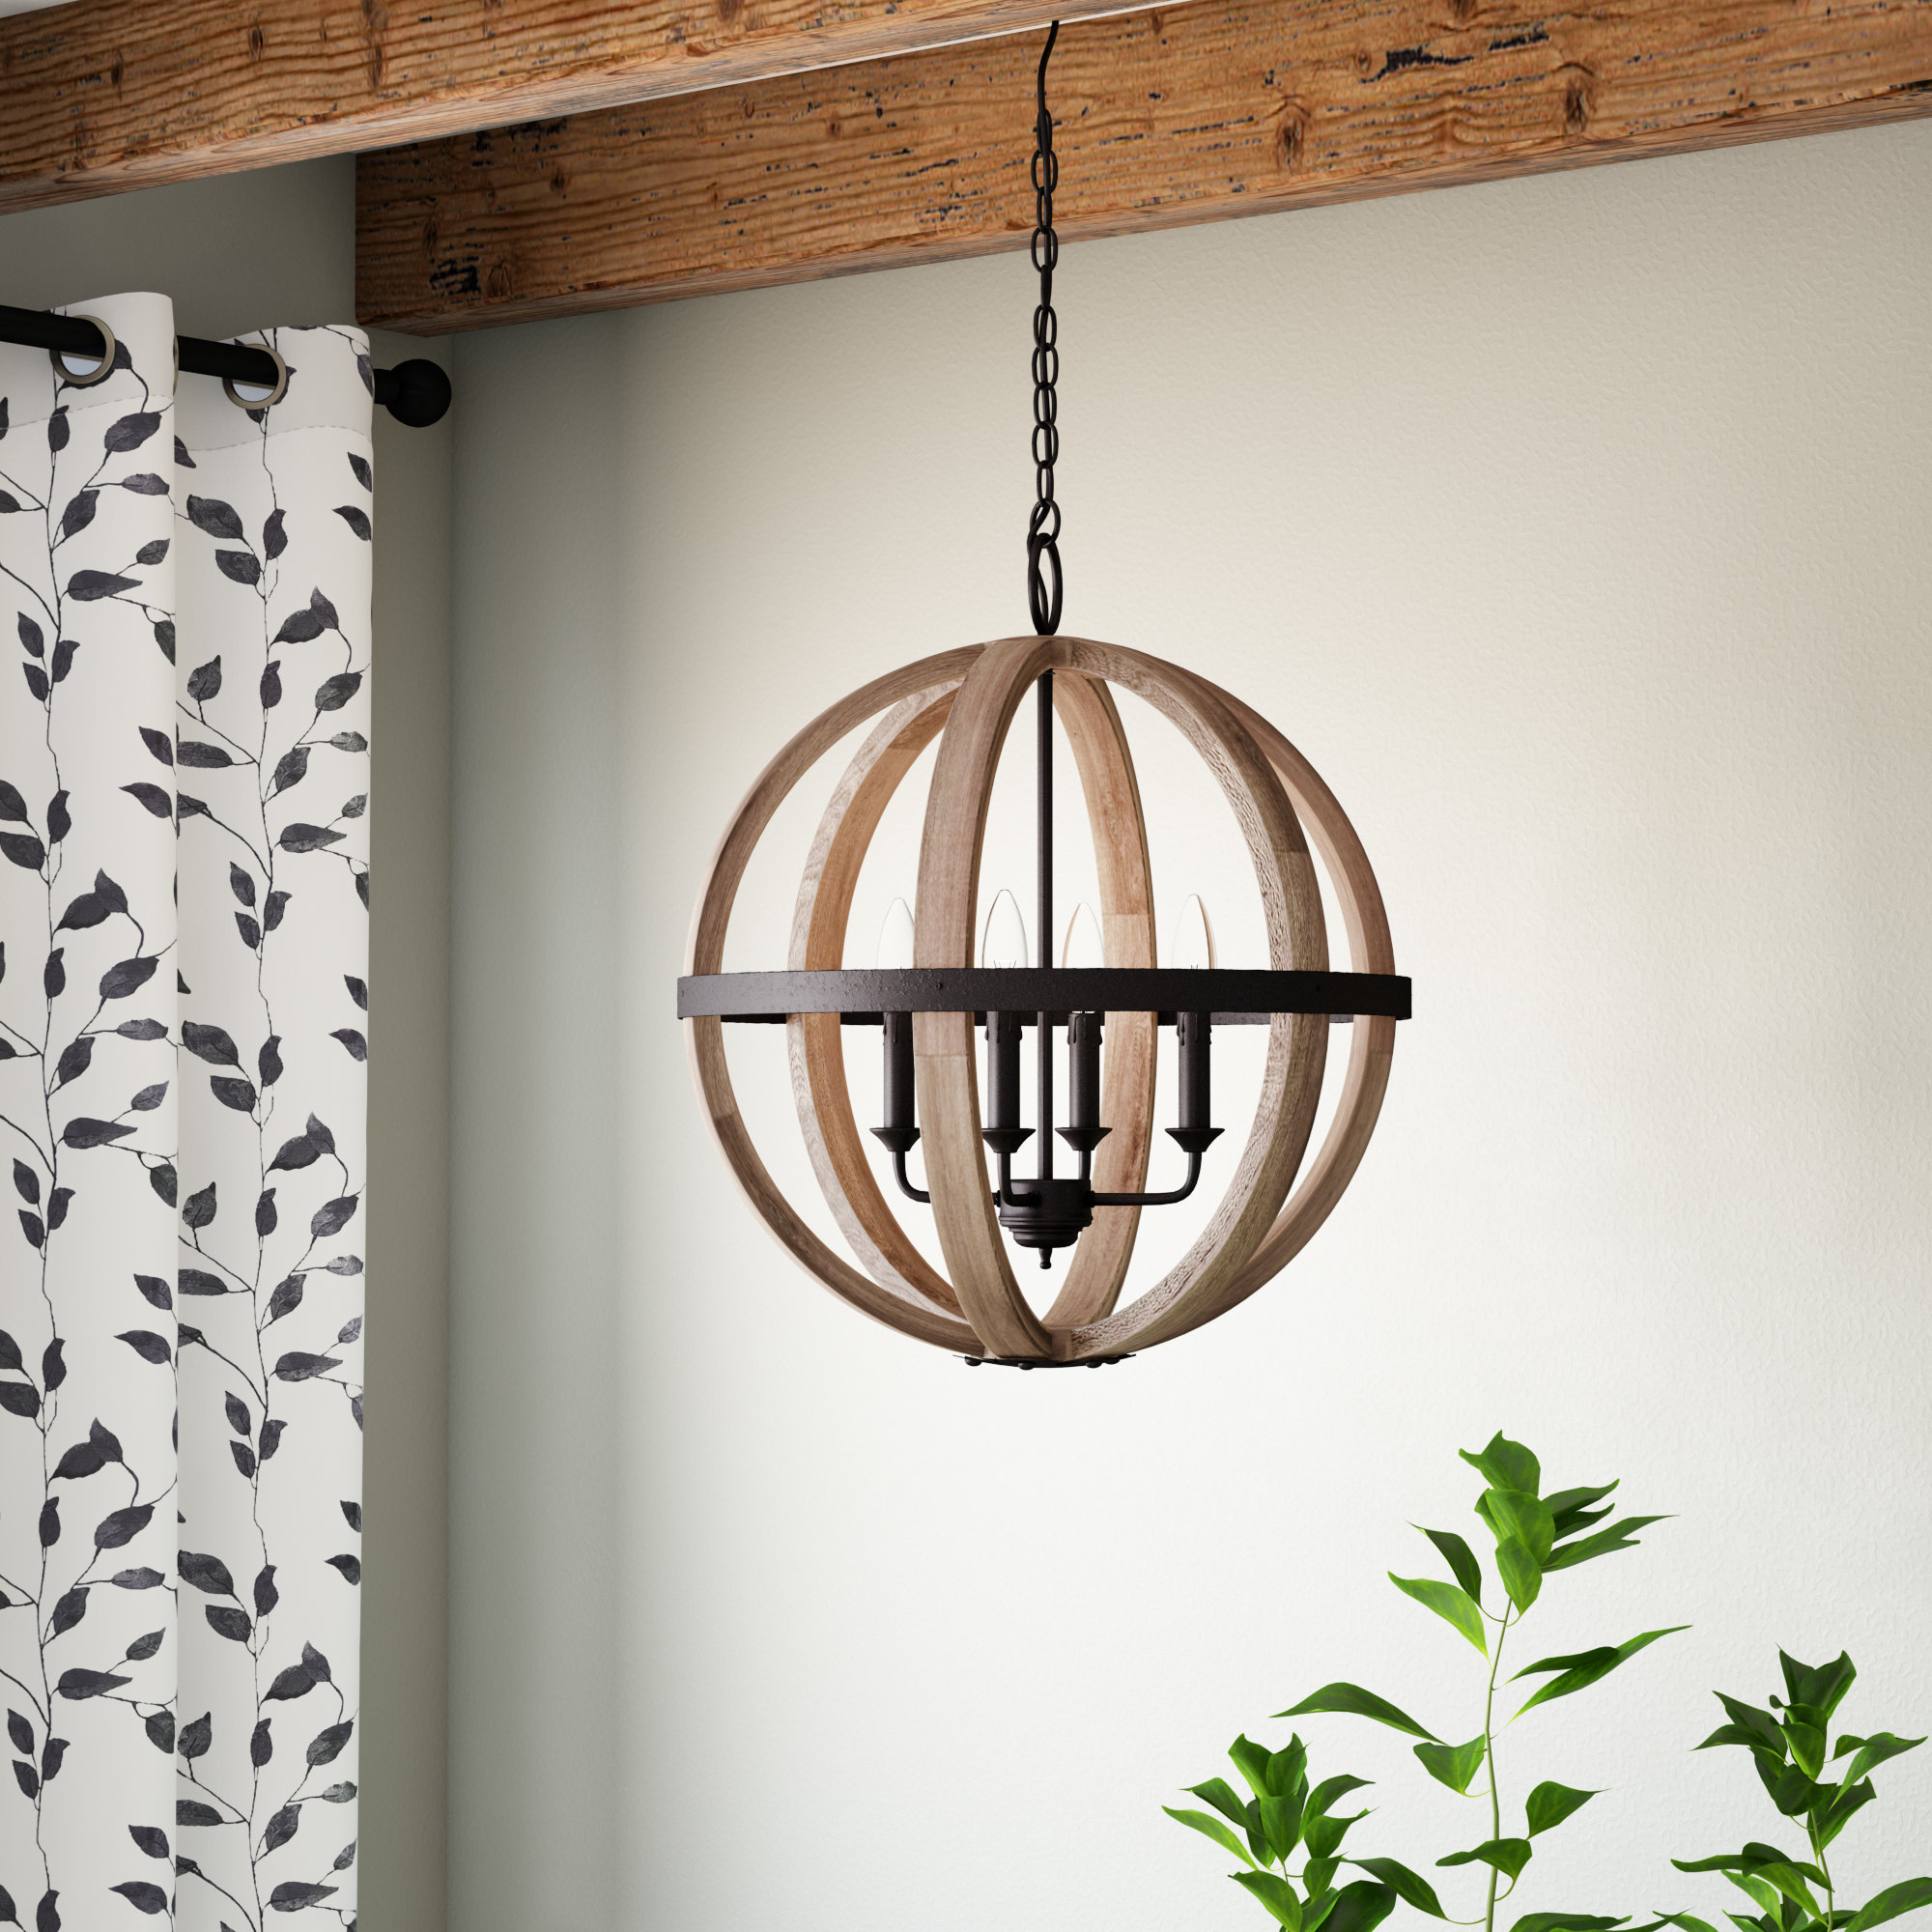 Gracie Oaks Caley 4-Light Globe Chandelier & Reviews | Wayfair pertaining to Joon 6-Light Globe Chandeliers (Image 8 of 30)